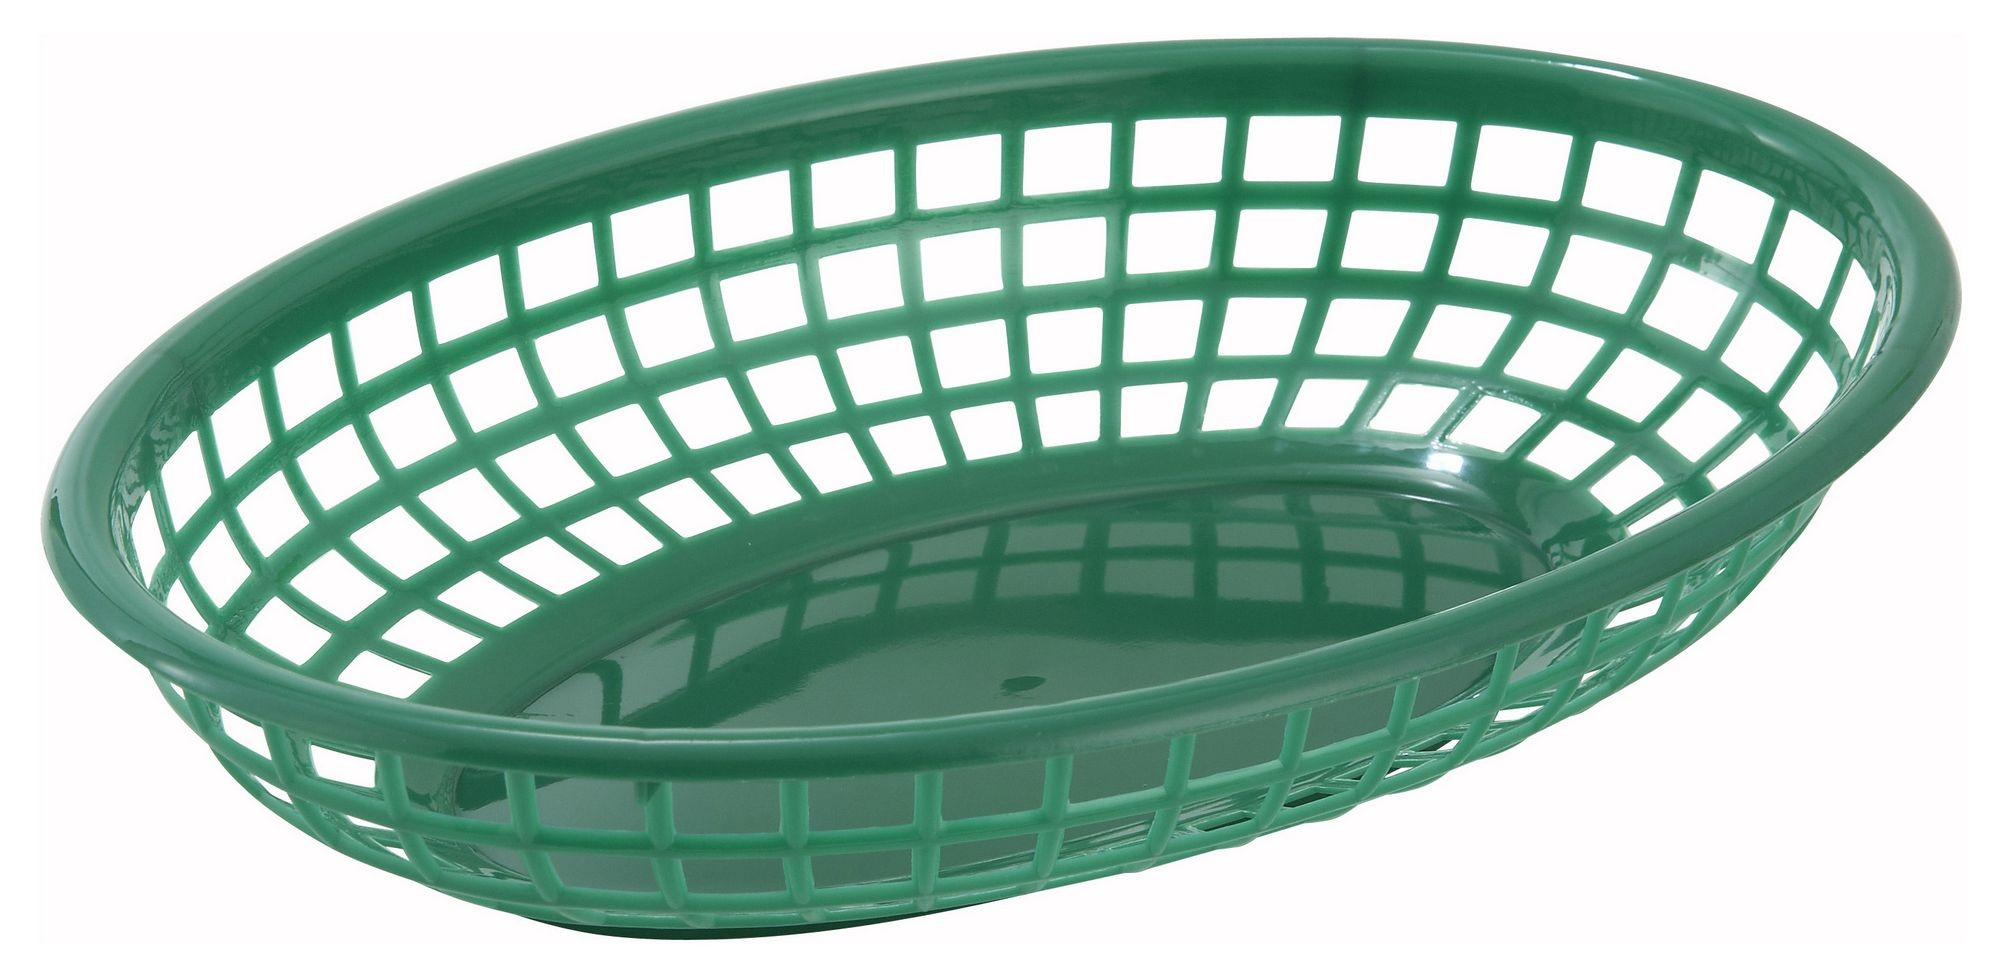 Winco PFB-10G Green Oval Plastic Fast Food Basket 9-1/2""